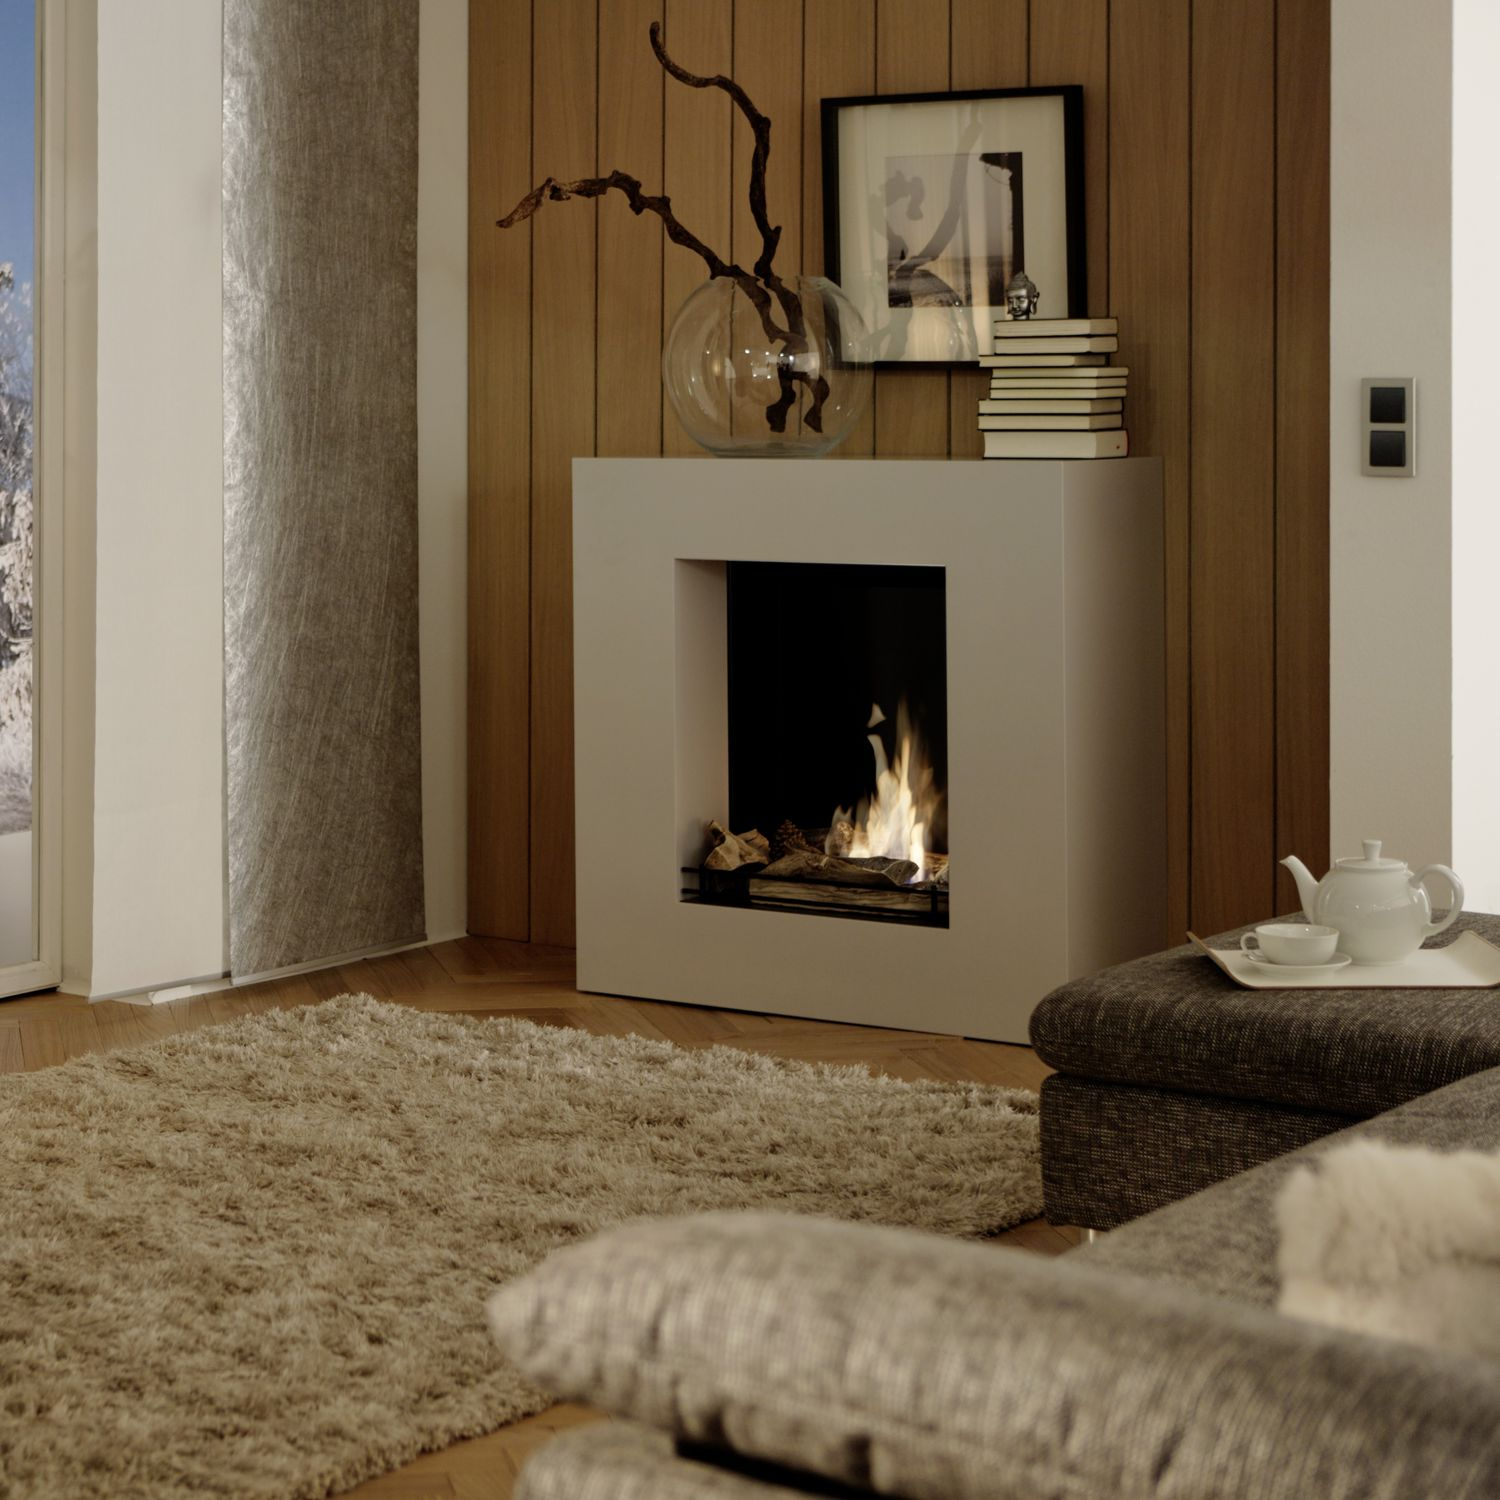 Ethanol Kamin Ingolstadt Bioethanol Fireplace Contemporary Open Hearth Central Caminetti Cube Alpha Linea Kamin Design Gmbh Co Kg Ingolstadt